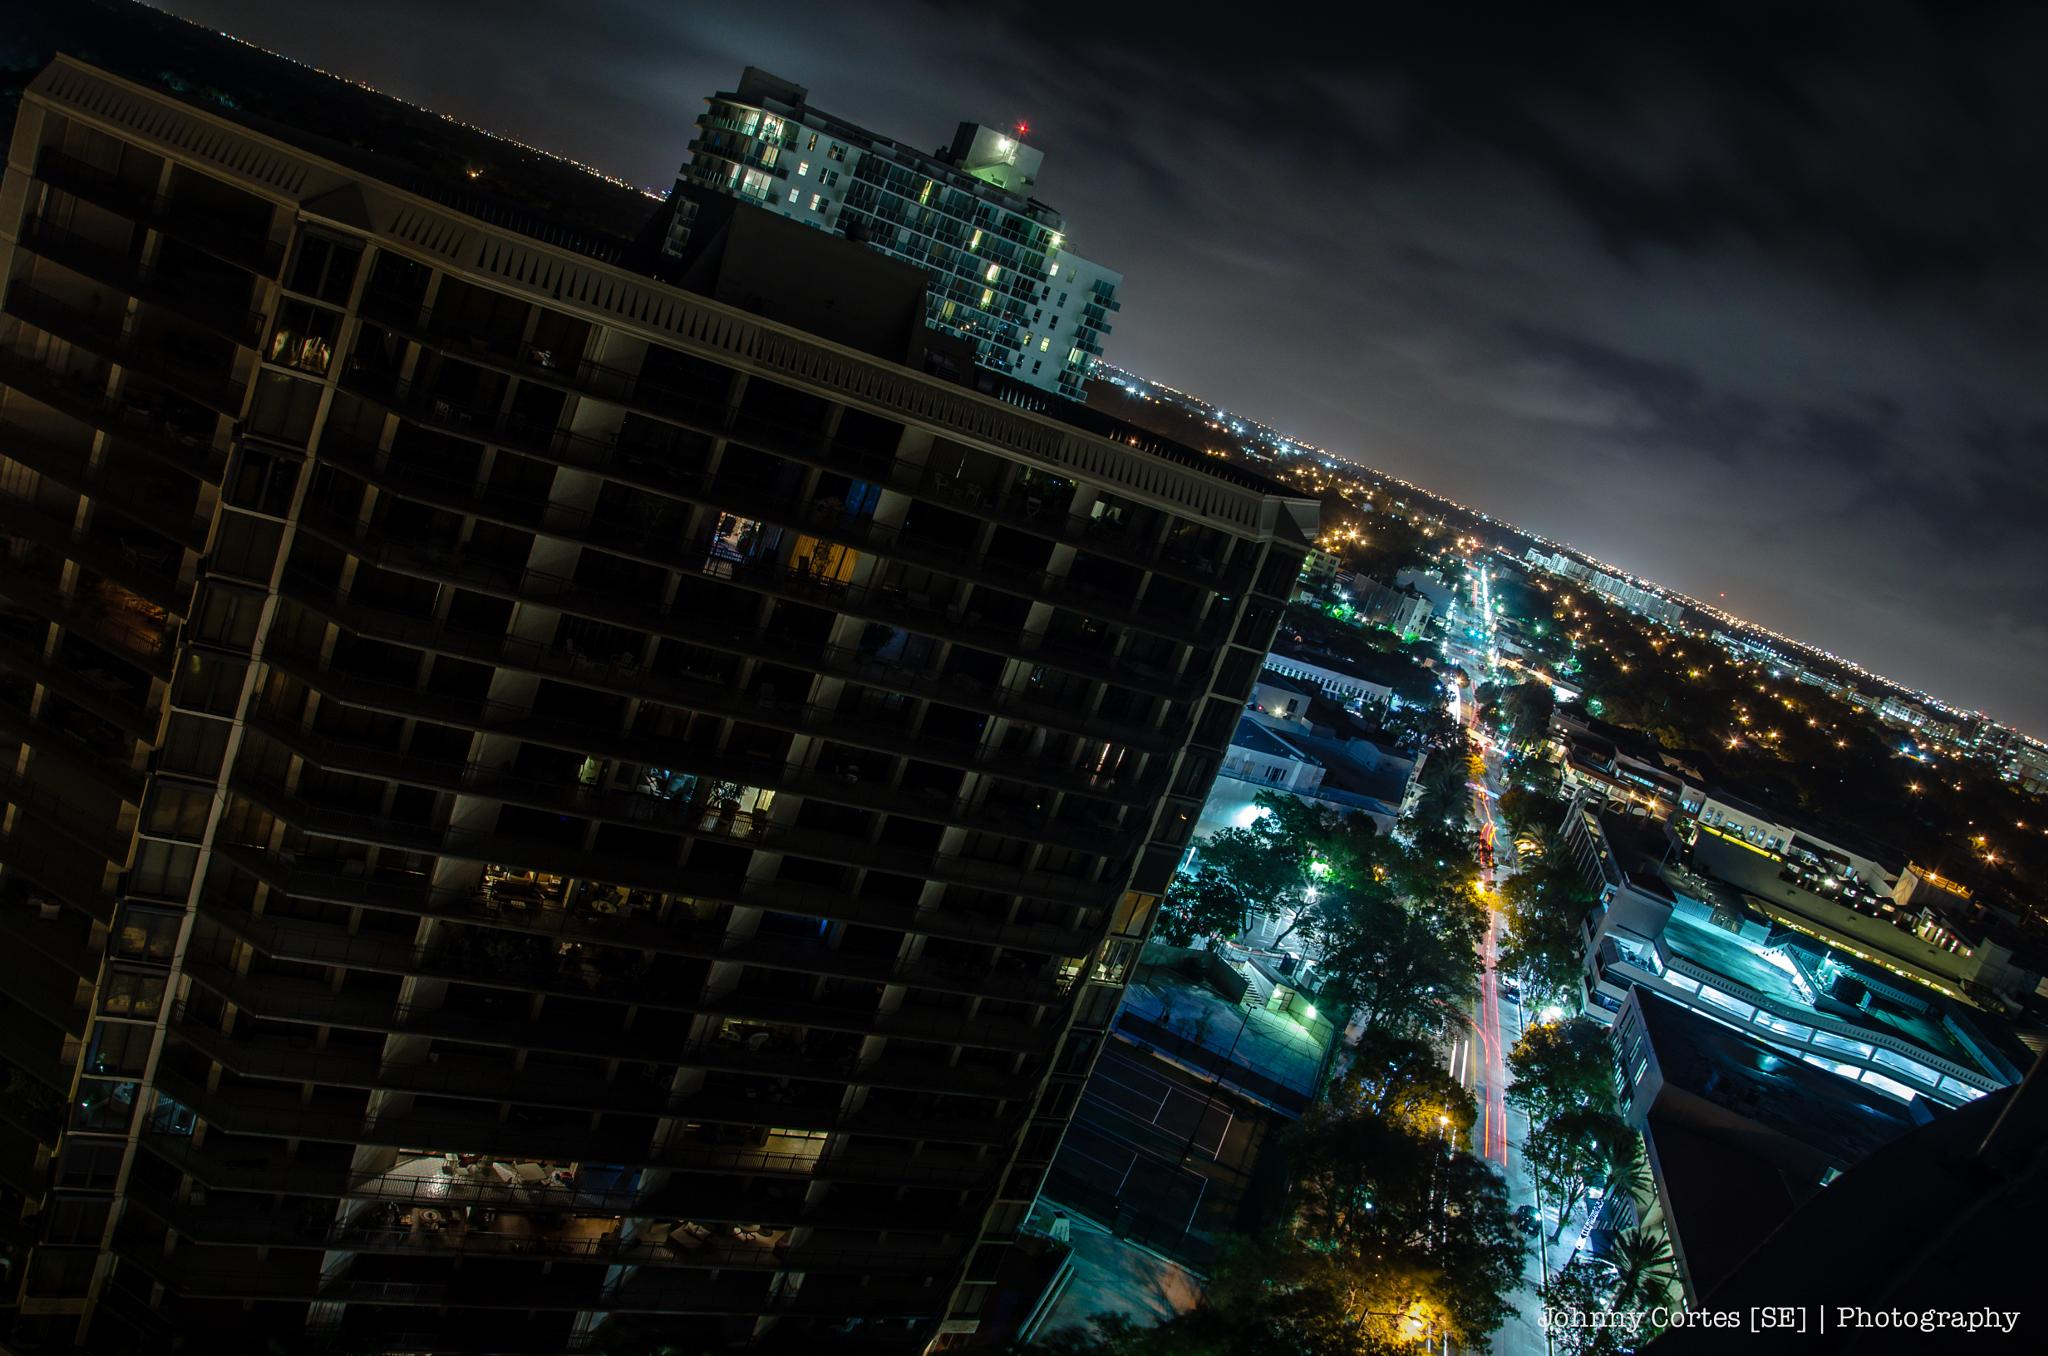 City Lights by Johnny Cortes